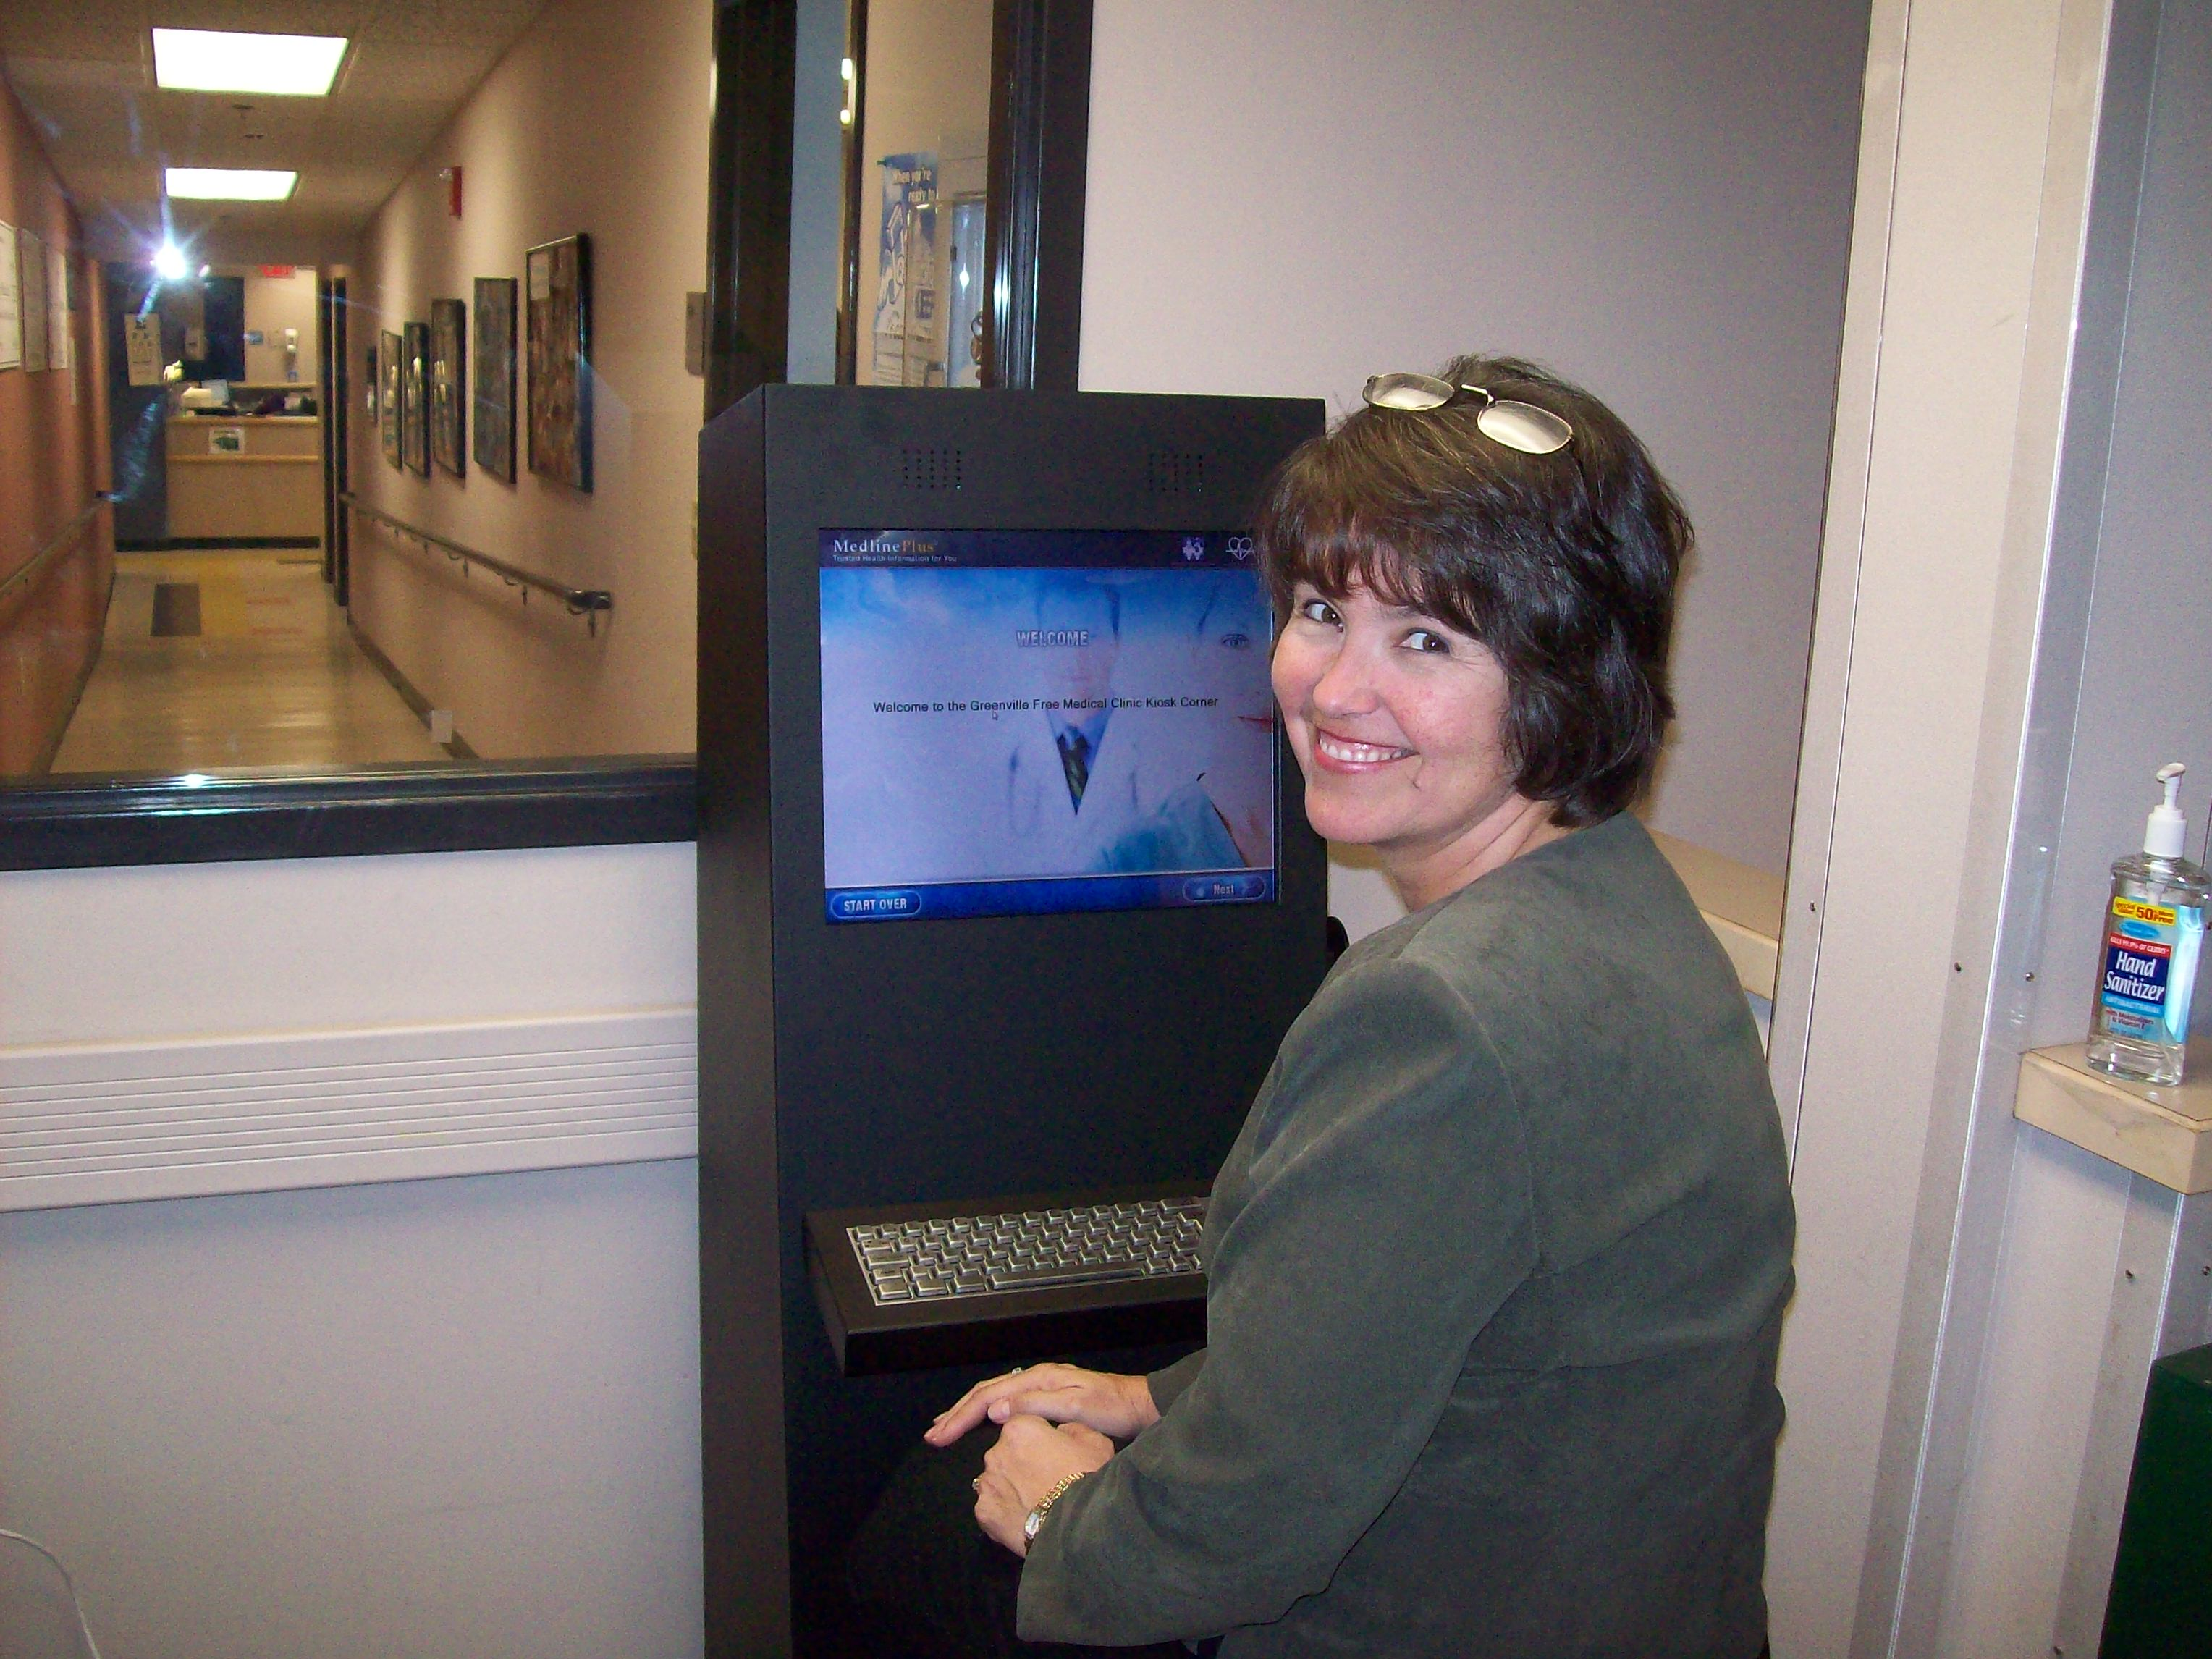 Suzie Foley using the kiosk at the Greenville Free Medical Clinic